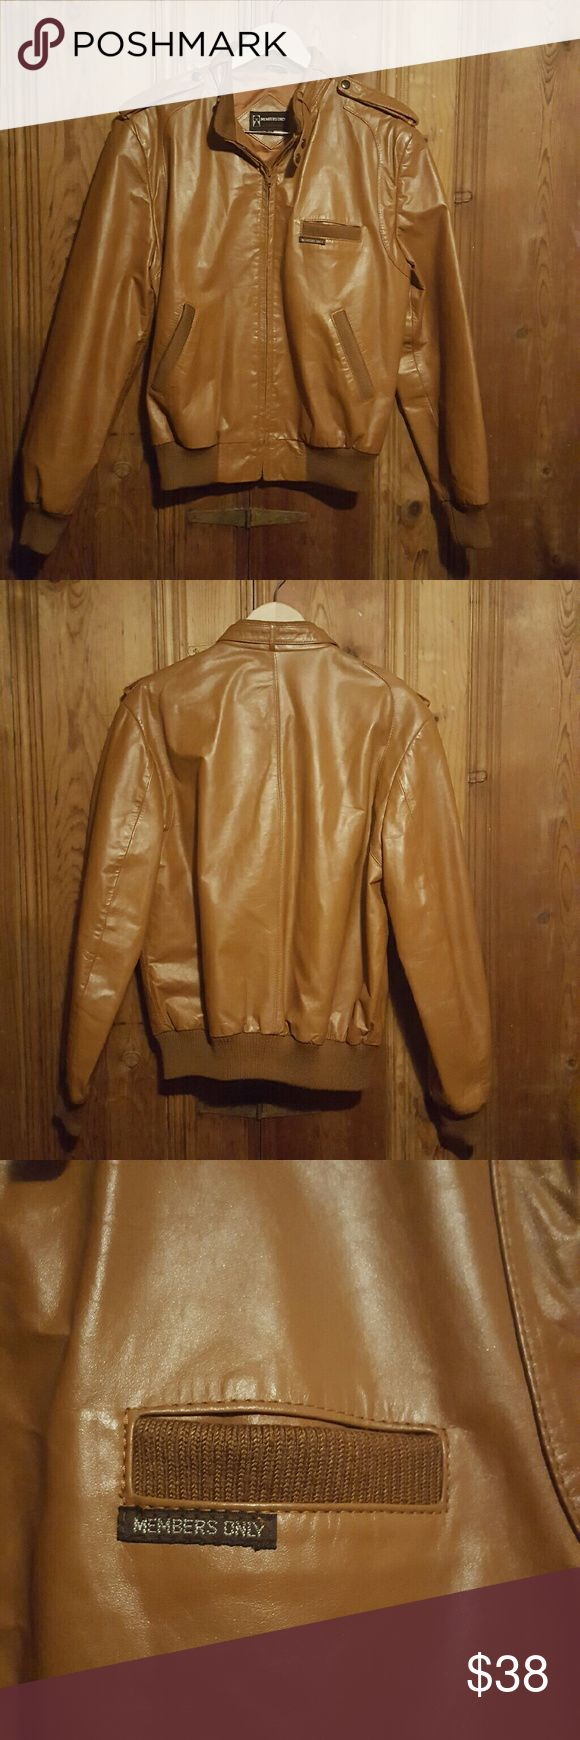 Vintage Members Only Tan Leather Jacket Vintage Tan Leather Members Only Jacket Size 42 Large. Great exterior condition but the lining at the neck is beginning to tear. Not visible when worn. Vintage Jackets & Coats Puffers